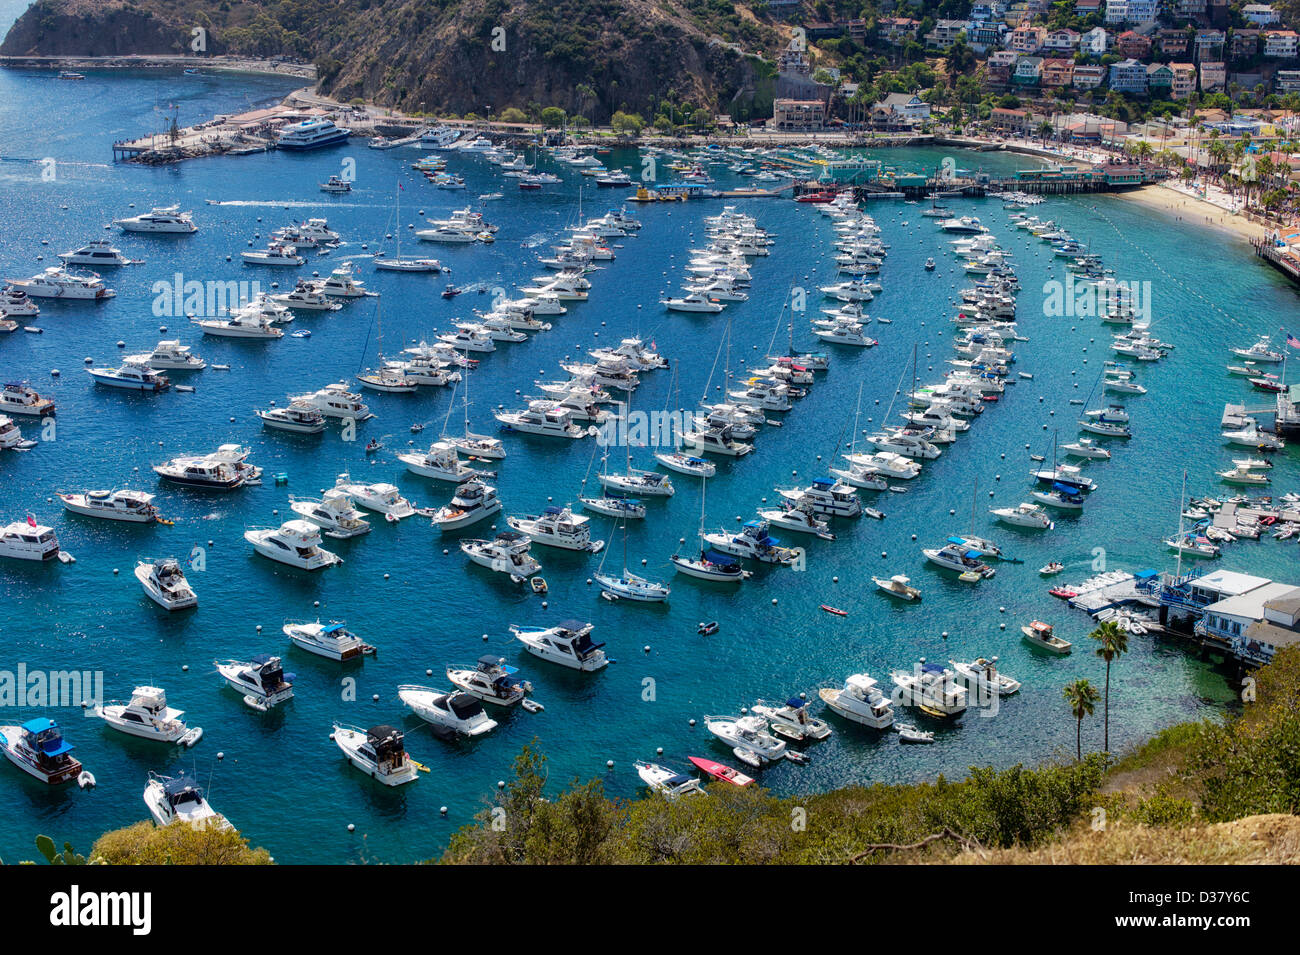 Boats in Catalina Harbor. Catalina Island, California - Stock Image